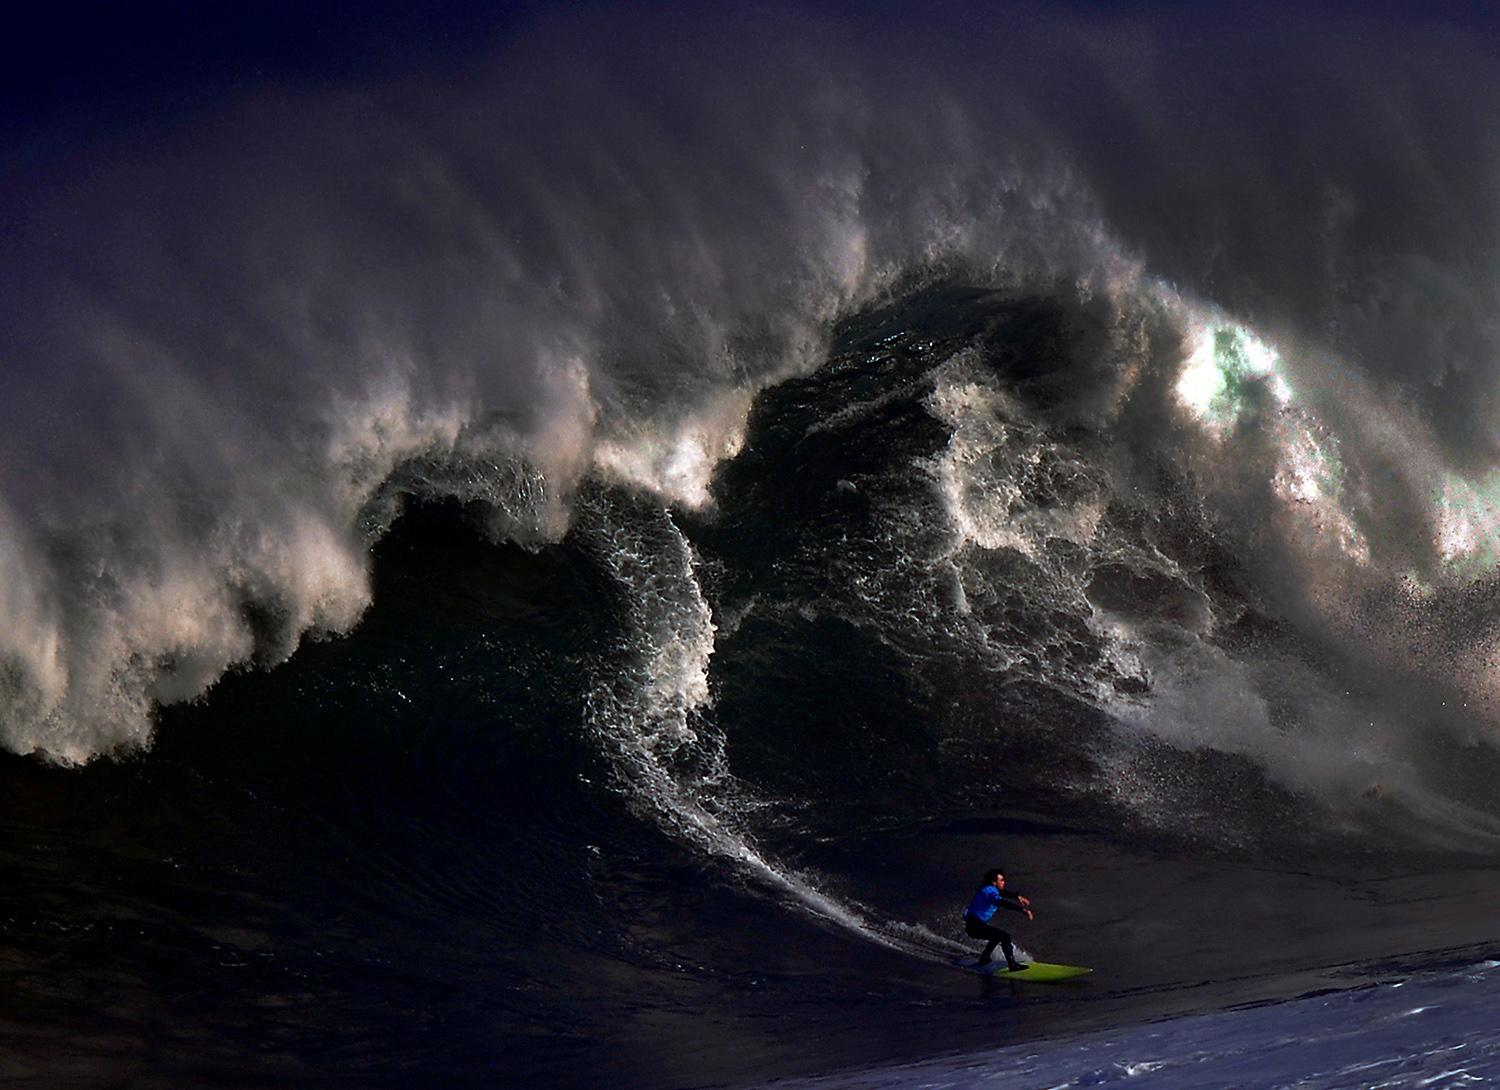 <p>A surfer rides a large wave at El Bocal during the Vaca Gigante (Big Cow) giant wave surf competition in Santander, northern Spain Dec. 17, 2016. (Photo: Vincent West/Reuters) </p>